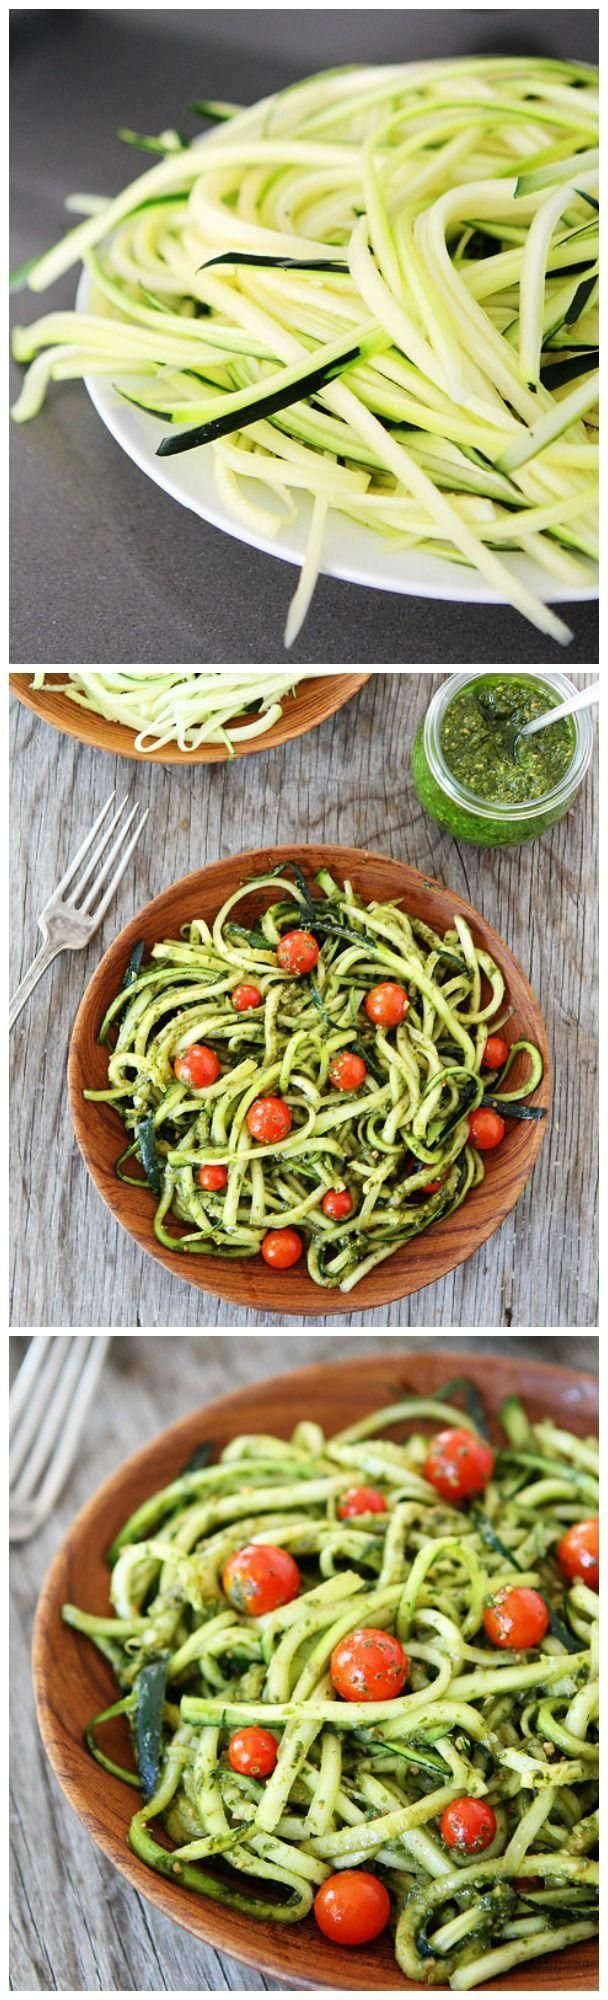 Zucchini Noodles with Pesto. Definitely need to try this